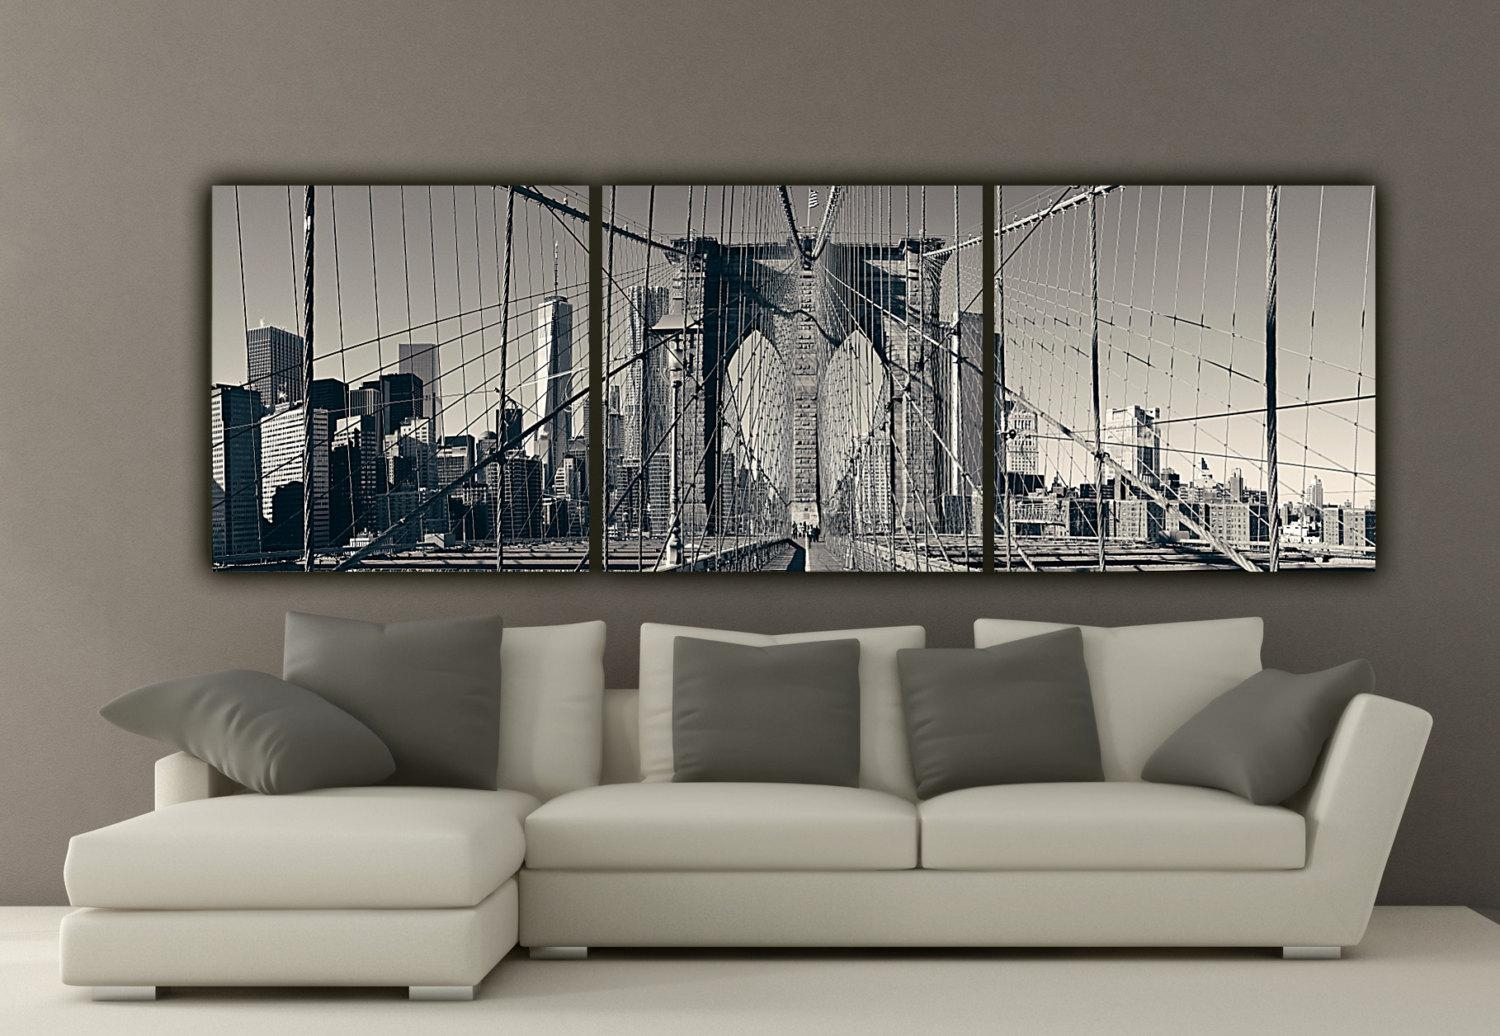 New York Brooklyn Bridge Canvas Wall Art Black And White New With Regard To Big Canvas Wall Art (View 11 of 21)